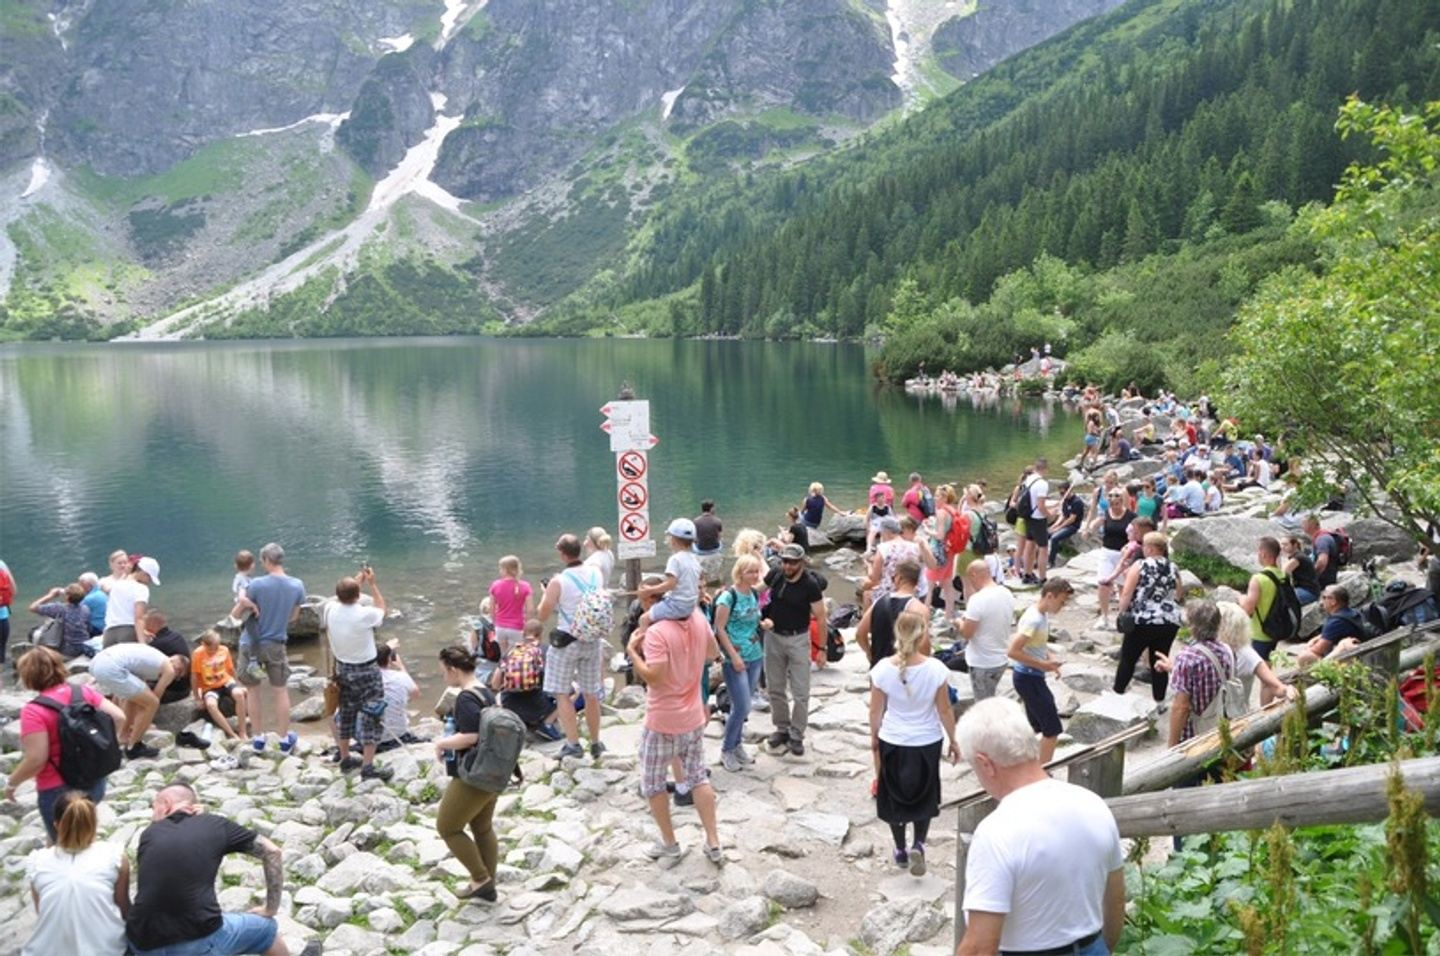 The best pond/lake to see in Tatra mountain